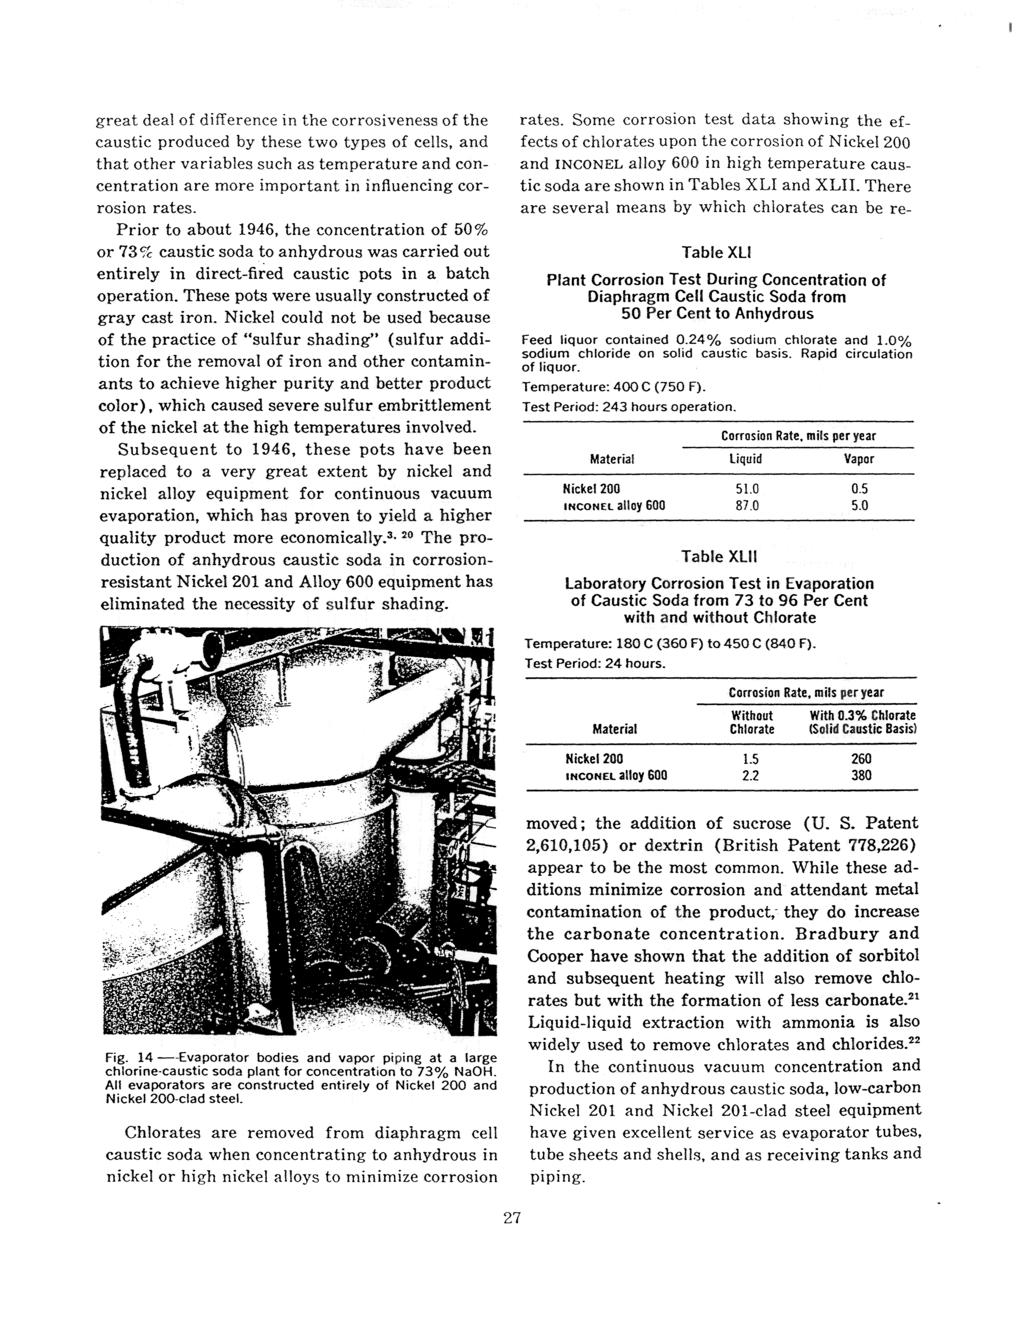 NiDI CORROSION RESISTANCE OF NICI<EL AND NICI<EL-CONTAINING ALLOYS